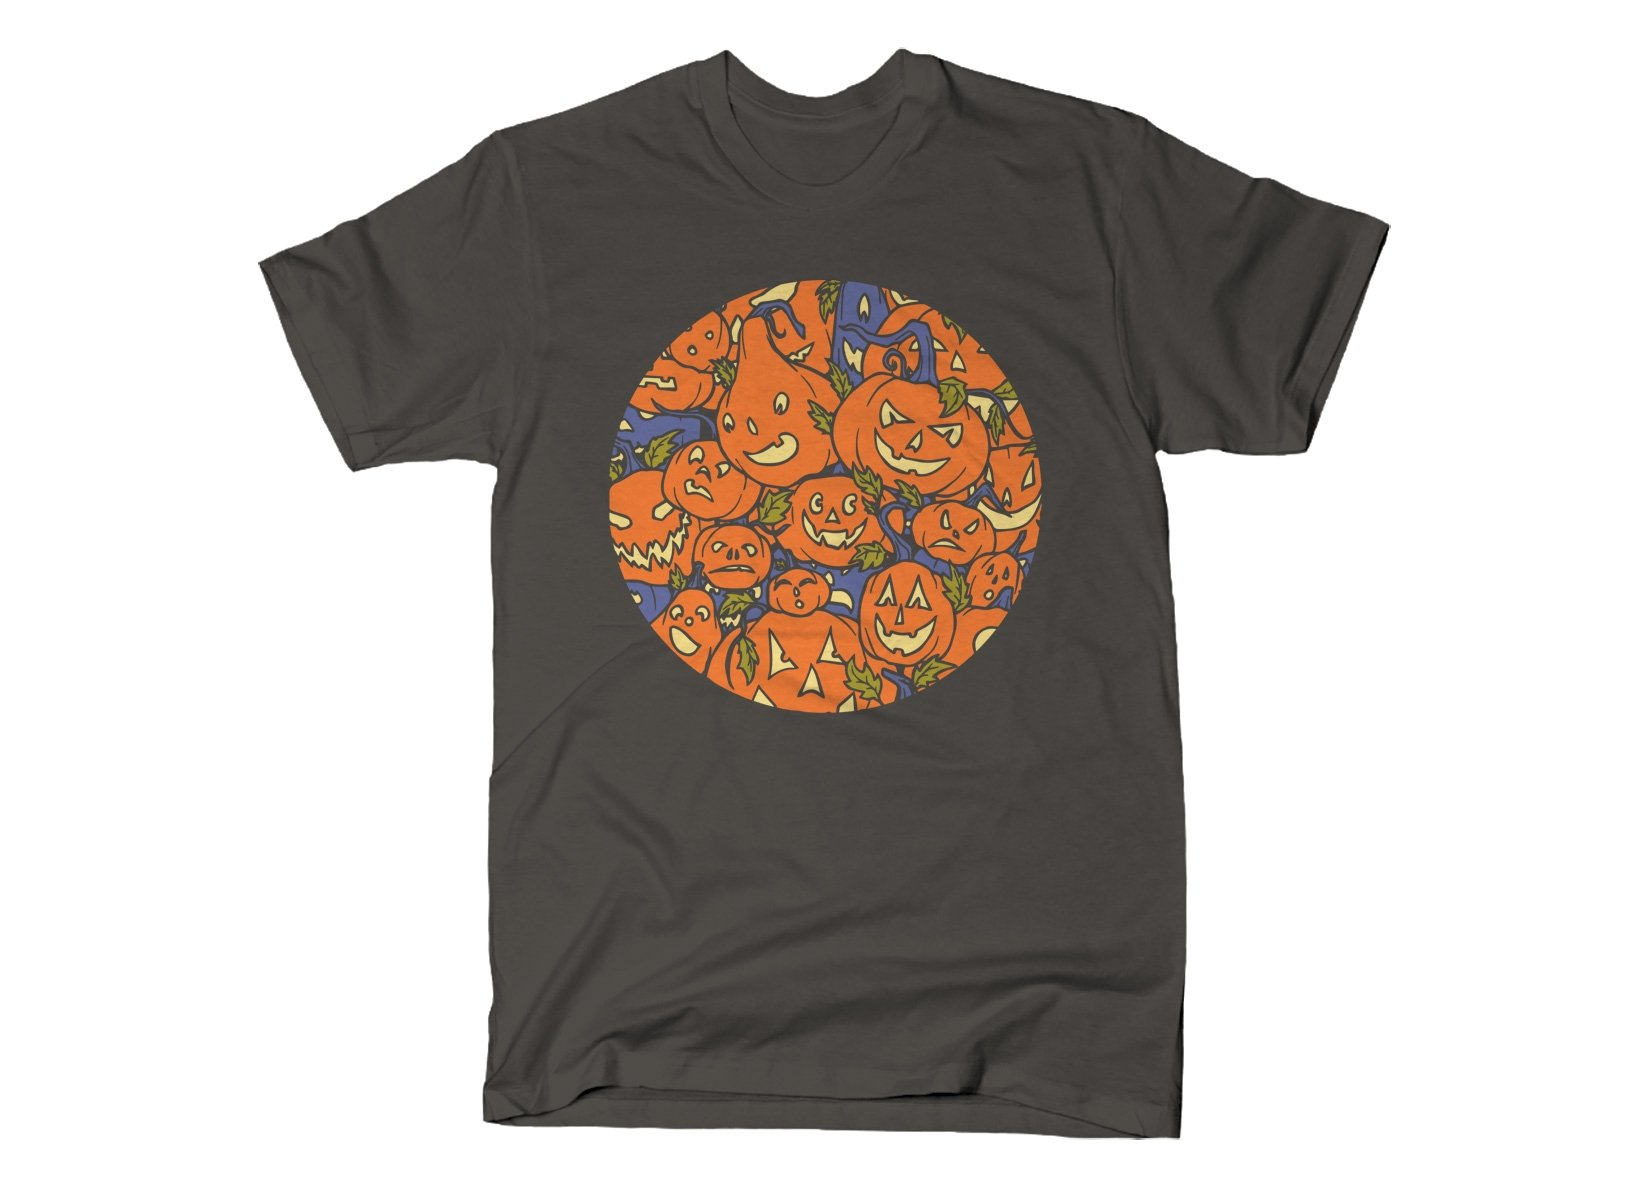 Jack-O-Lanterns on Mens T-Shirt